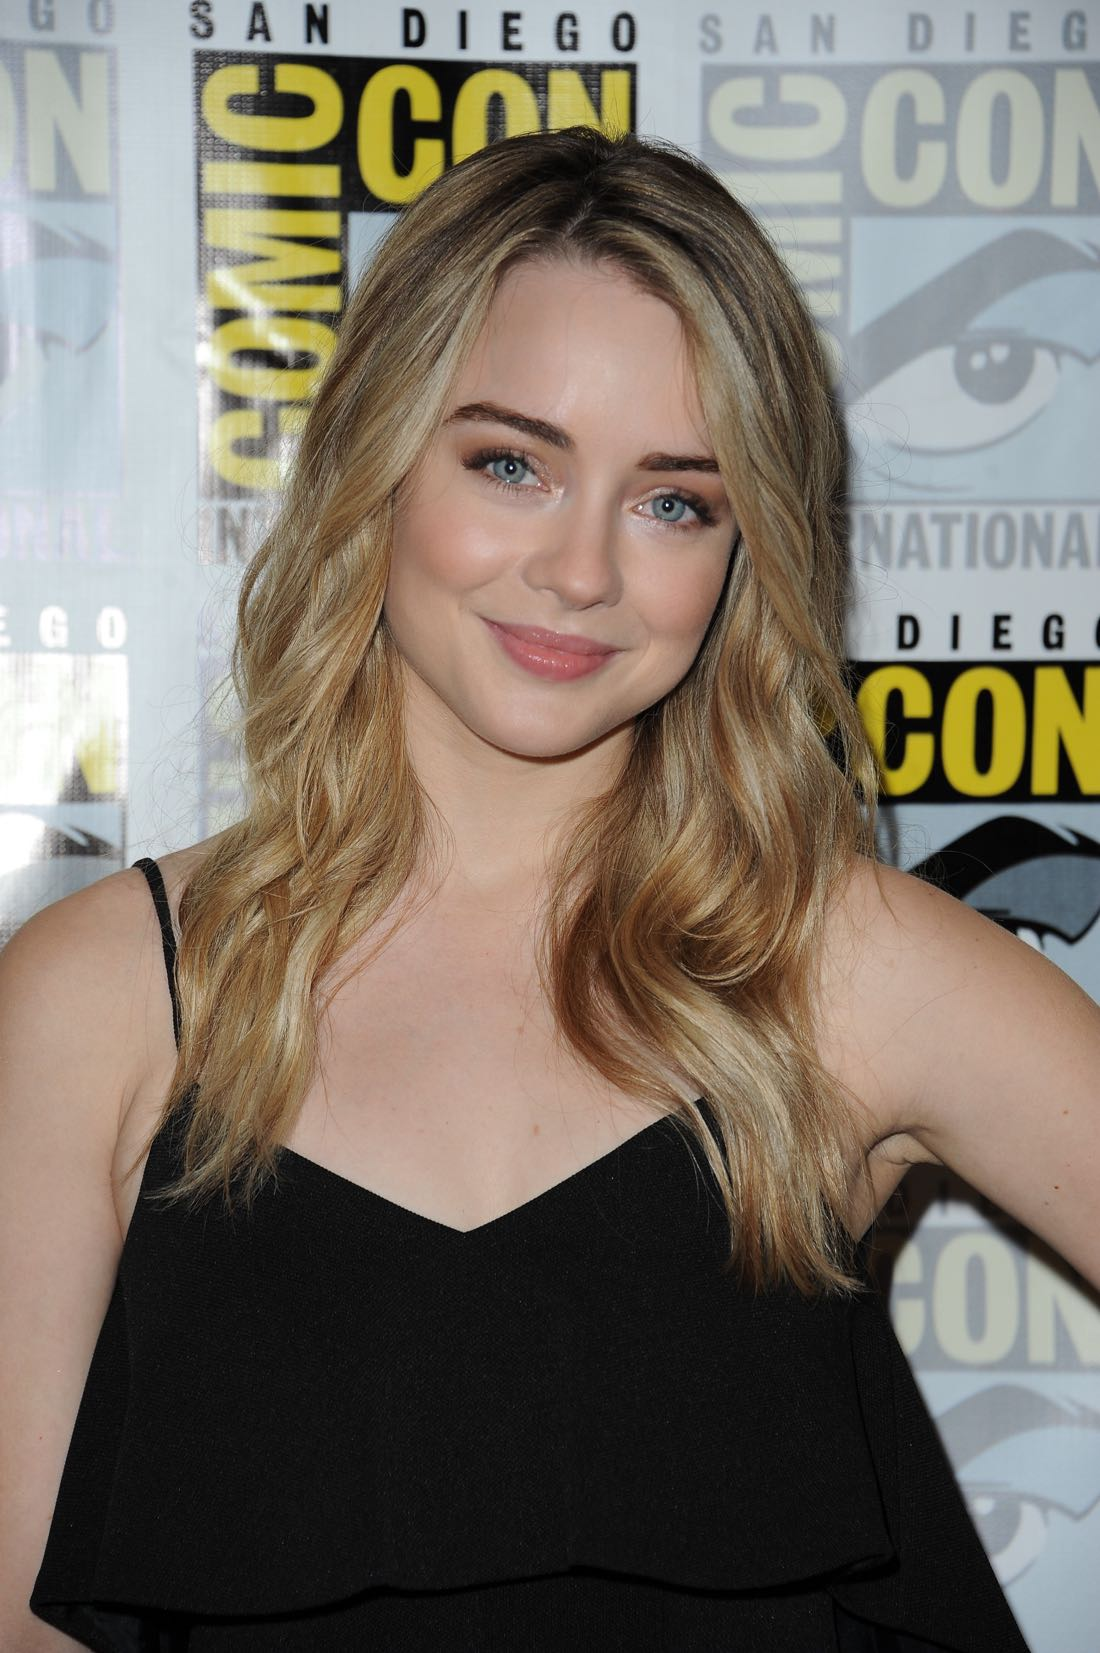 FOX FANFARE AT SAN DIEGO COMIC-CON © 2016: THE EXORCIST cast member Hannah Kasulka during THE EXORCIST press room on Friday, July 22 at the FOX FANFARE AT SAN DIEGO COMIC-CON © 2016. CR: Scott Kirkland/FOX © 2016 FOX BROADCASTING